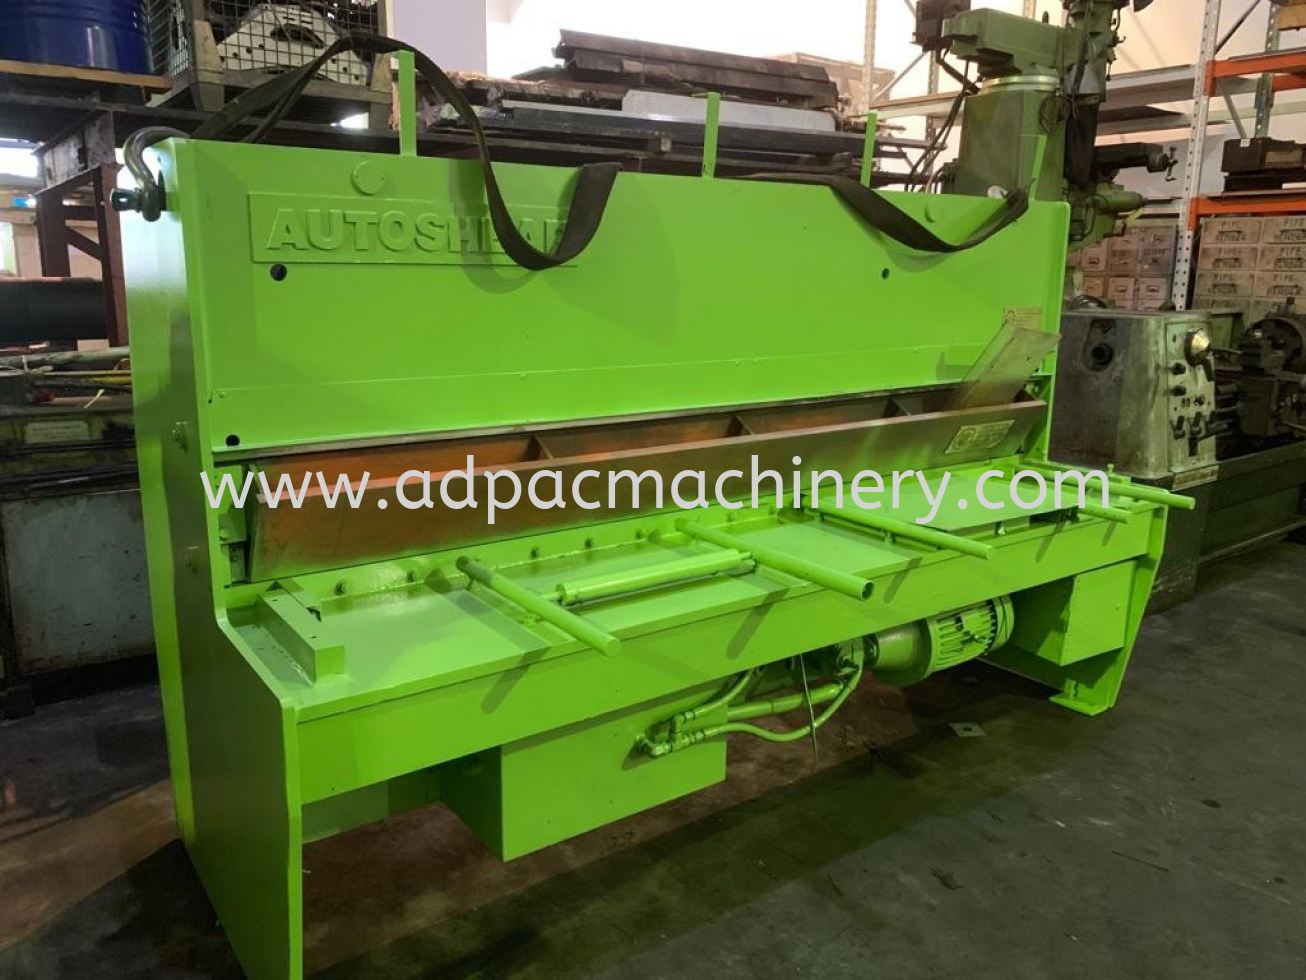 Used 'Autoshear' Hydraulic Shearing Machine